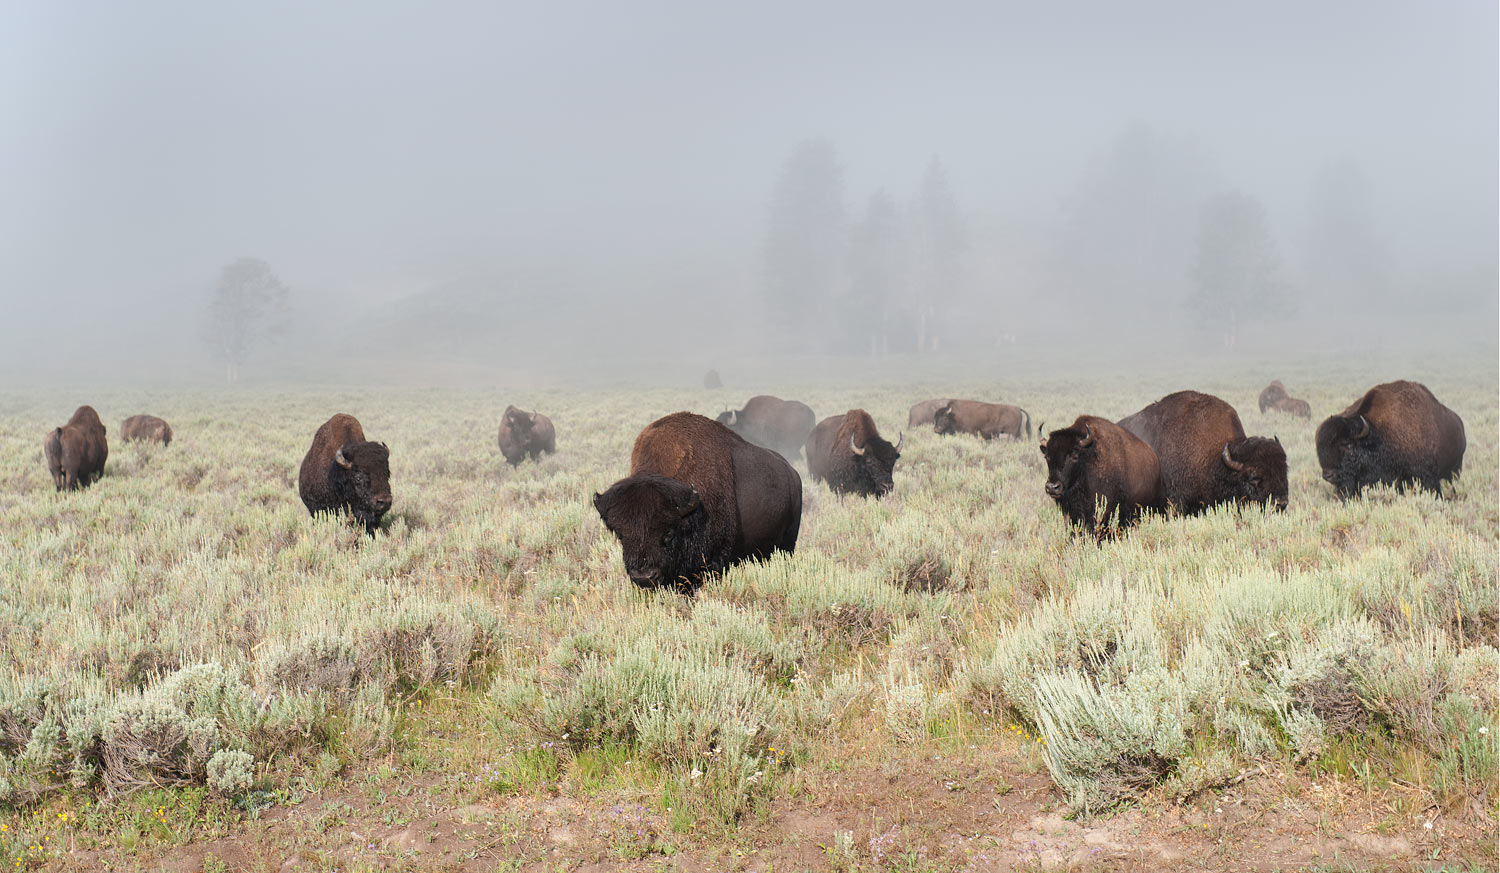 Bison grazing in early-morning fog, Hayden Valley, Yellowstone National Park